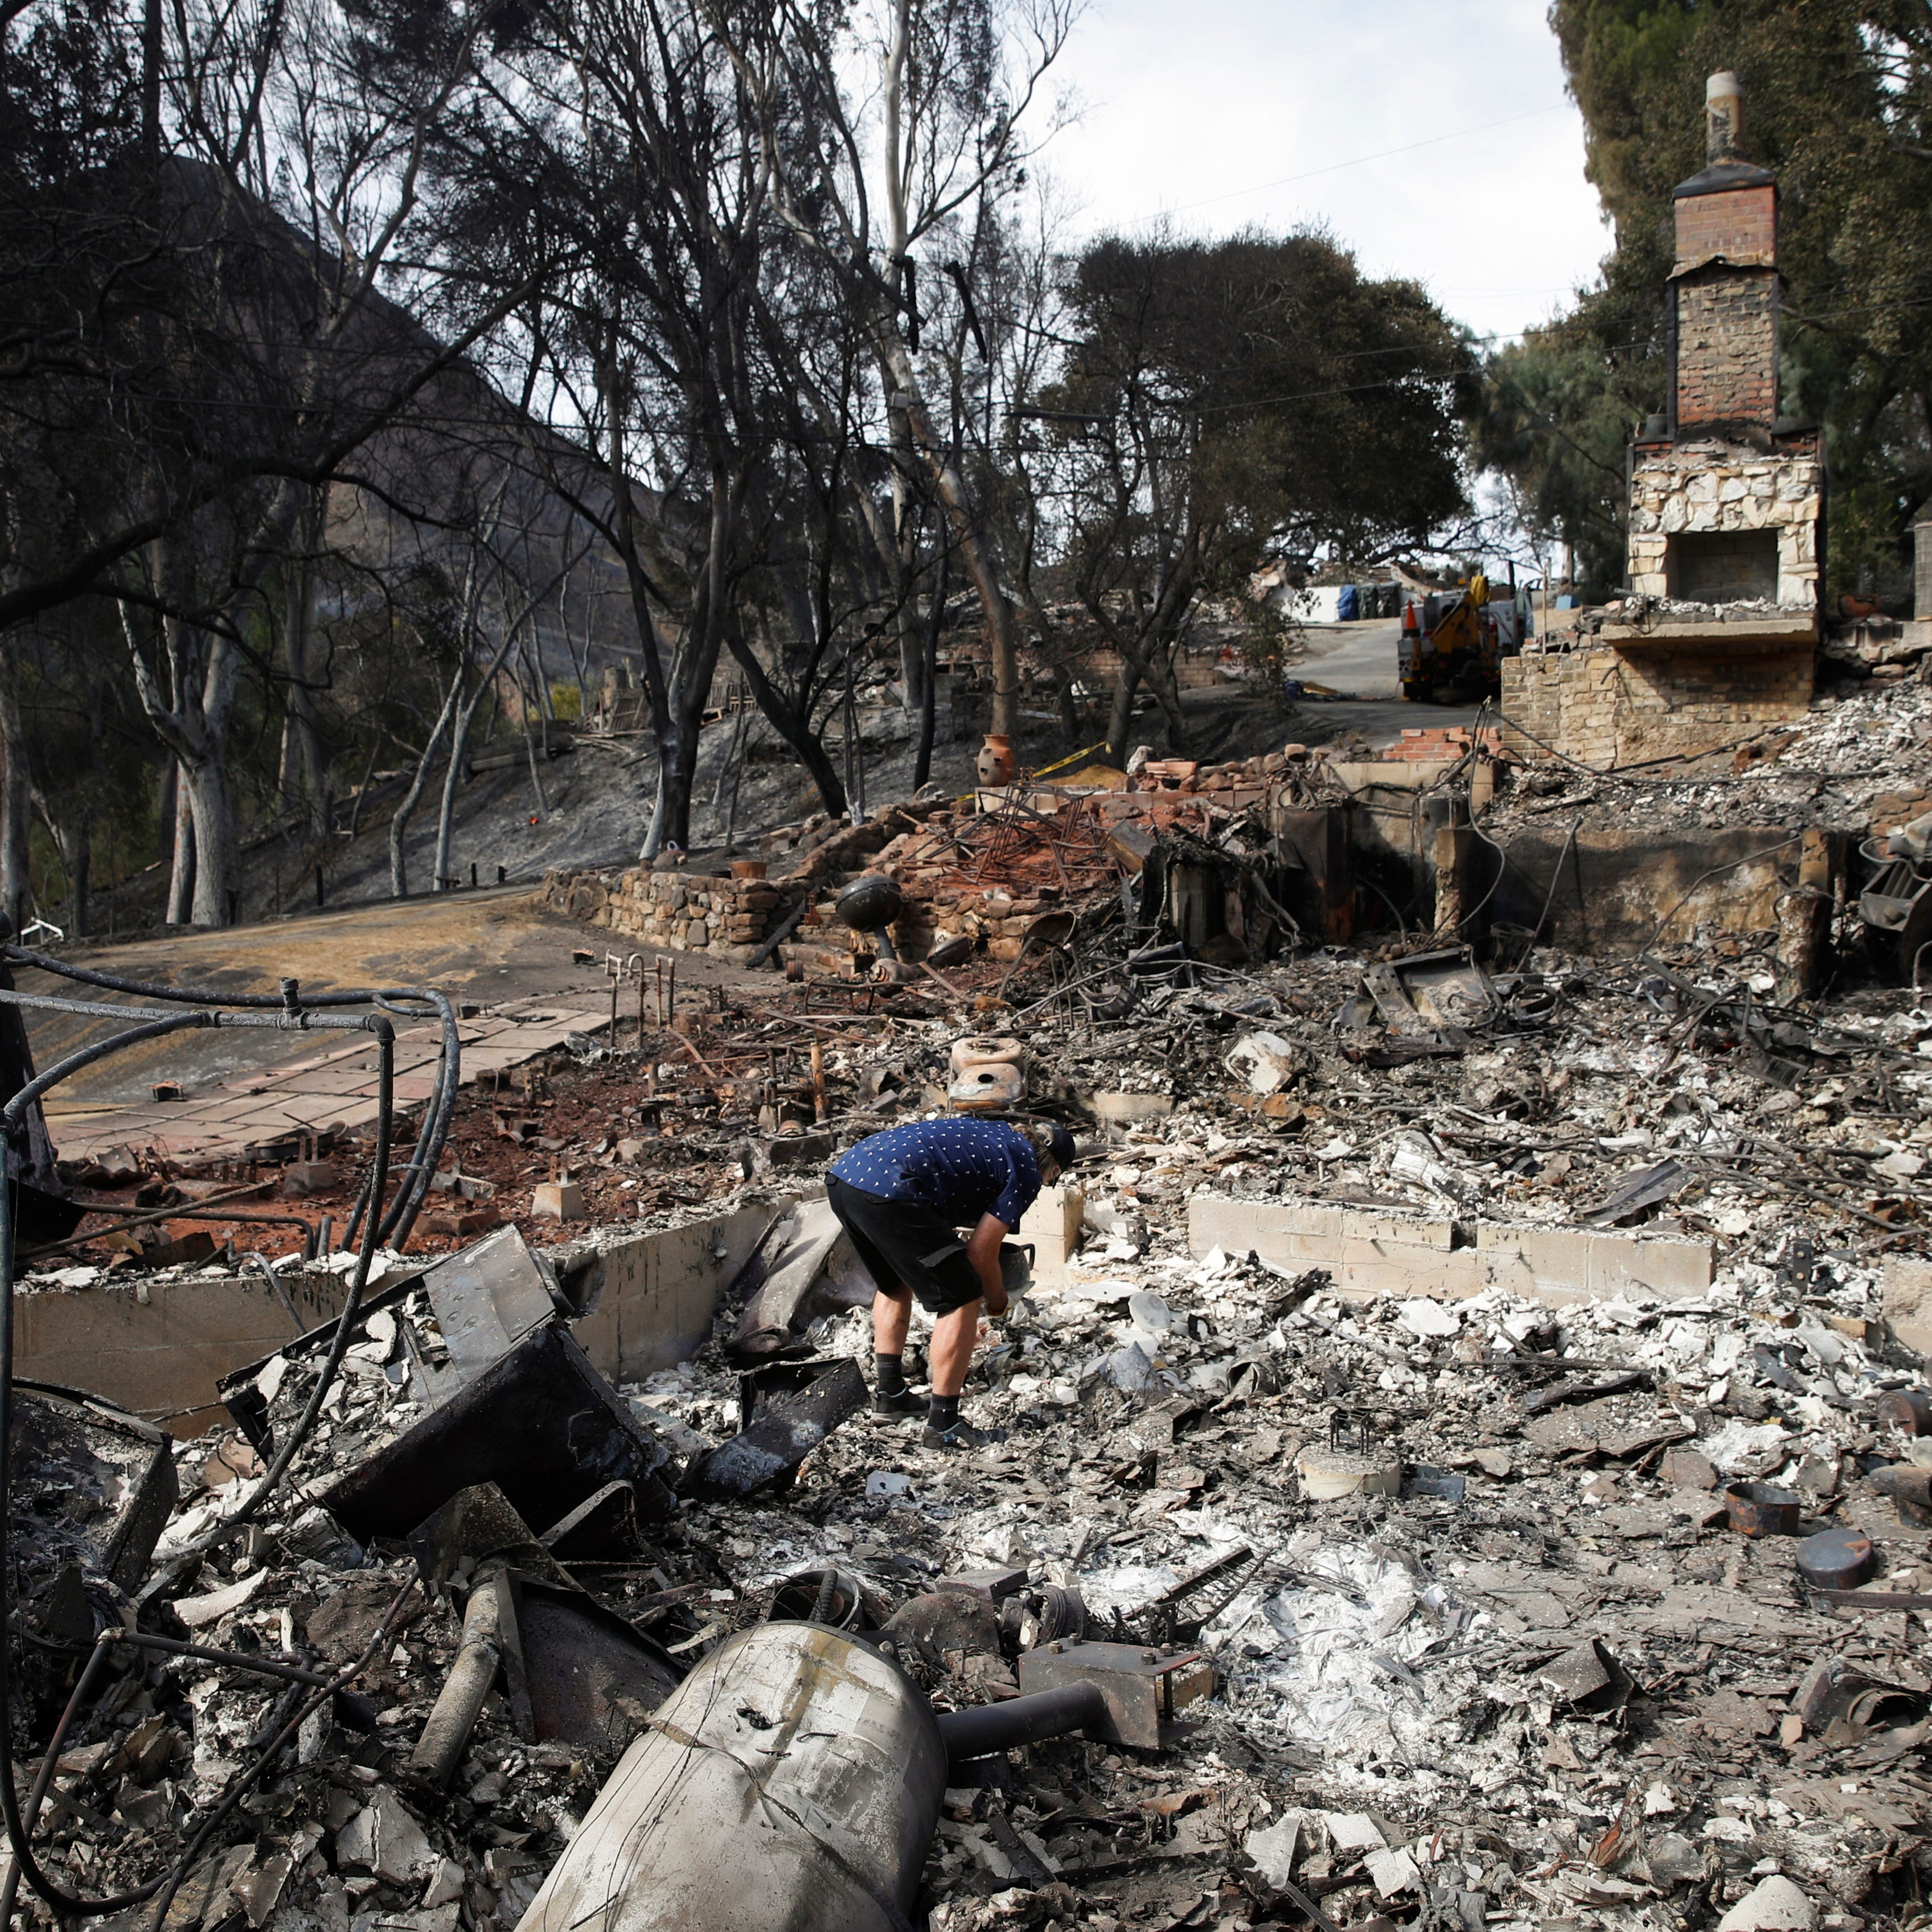 Roger Kelton searches through the remains of his mother-in-law's home leveled by the Woolsey Fire, Tuesday, Nov. 13, 2018, in the southern California city of Agoura Hills.